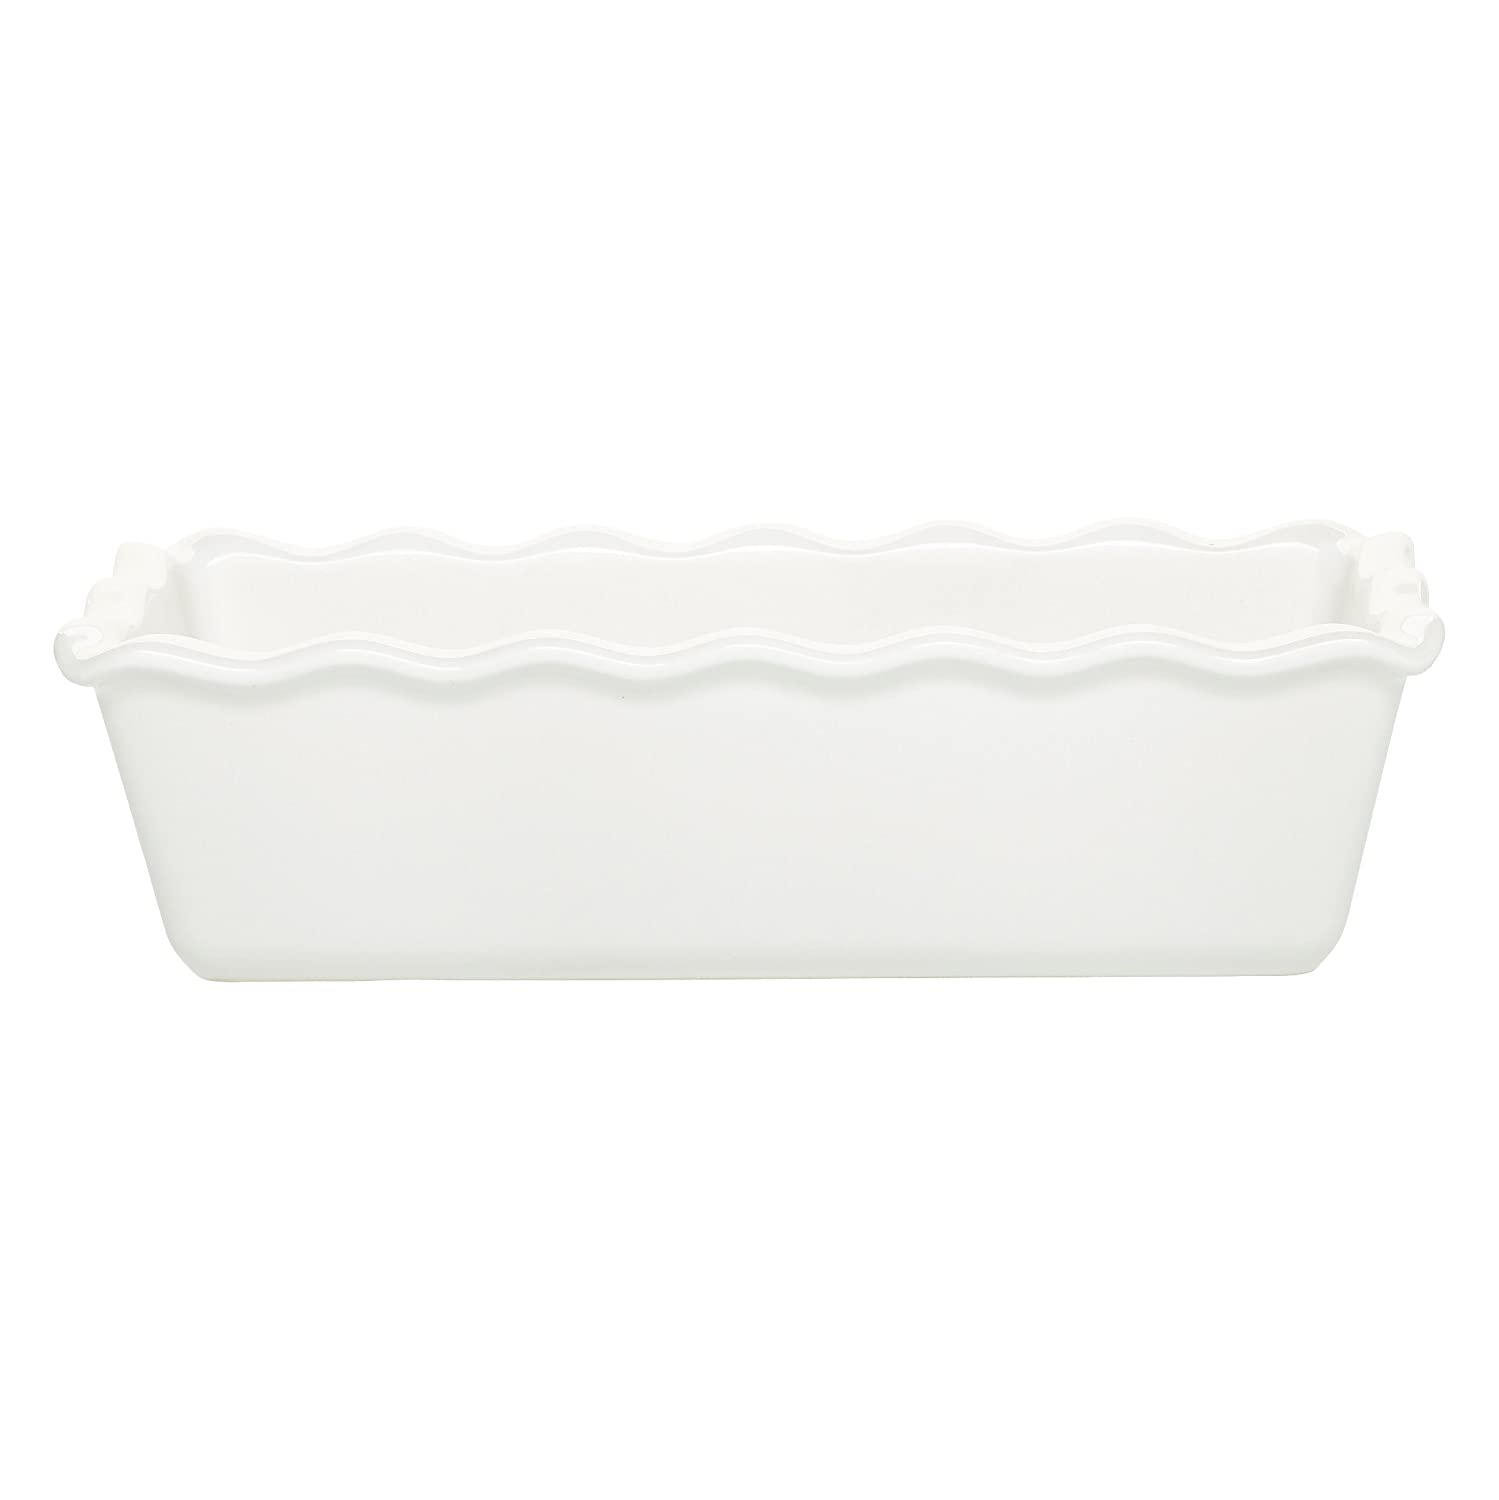 "Emile Henry Made In France Ruffled Loaf Pan, 9"" by 5"" by 3"", Flour White"